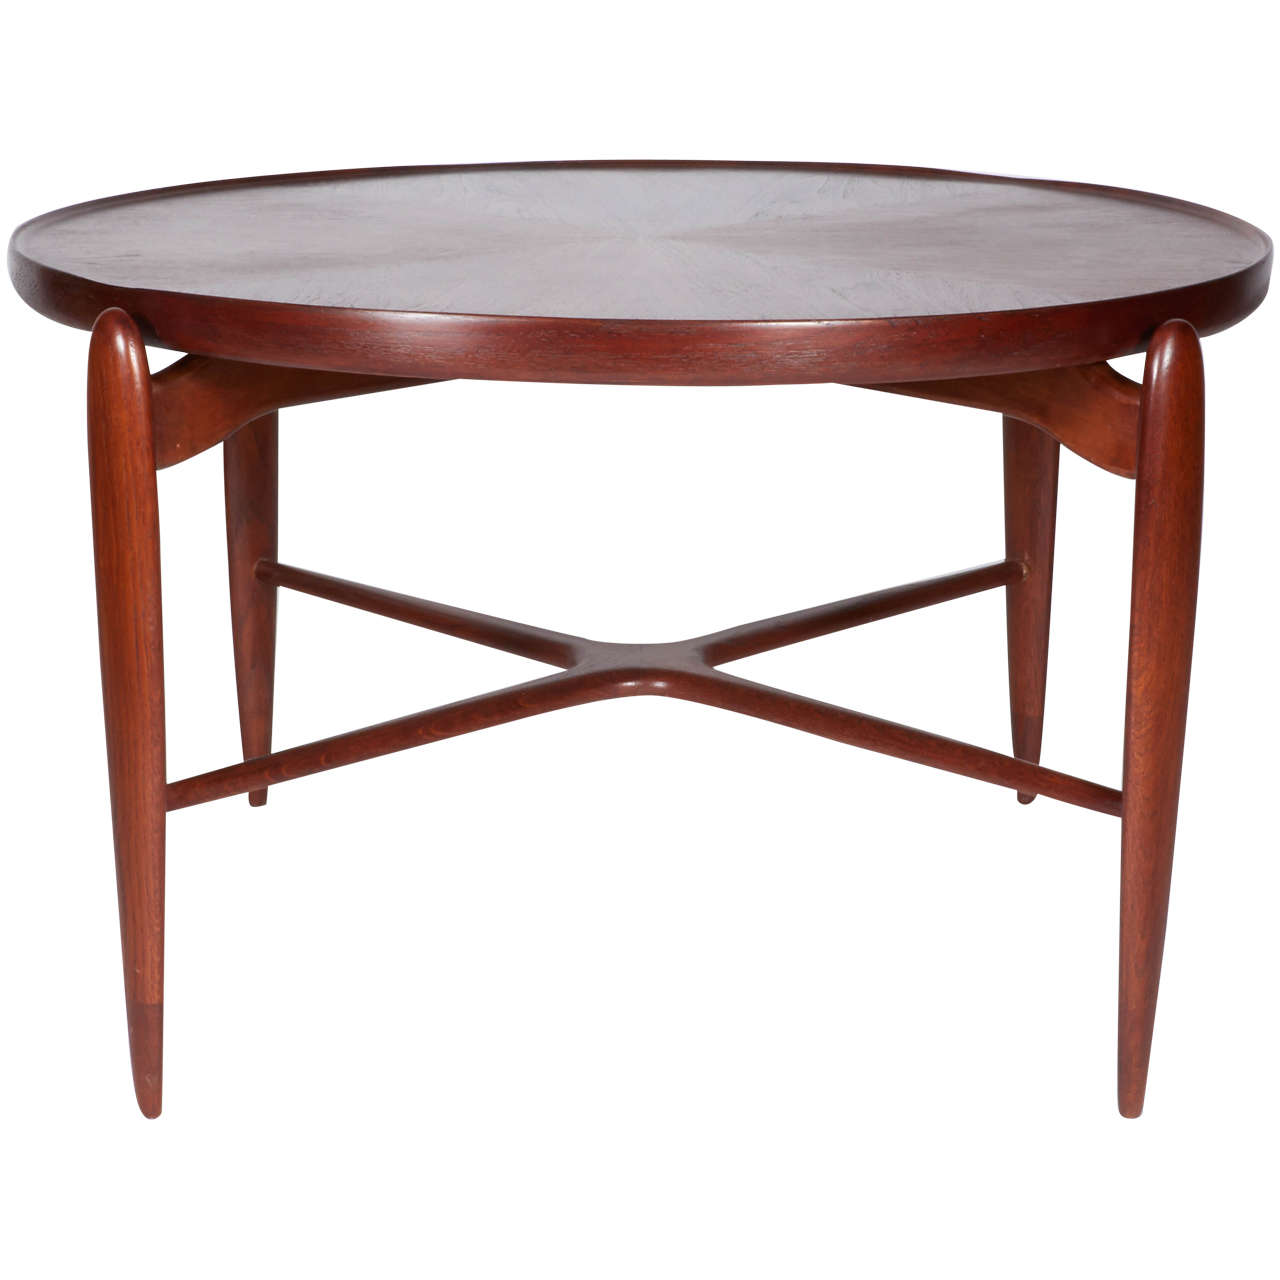 Elegant Danish Coffee Table At 1stdibs